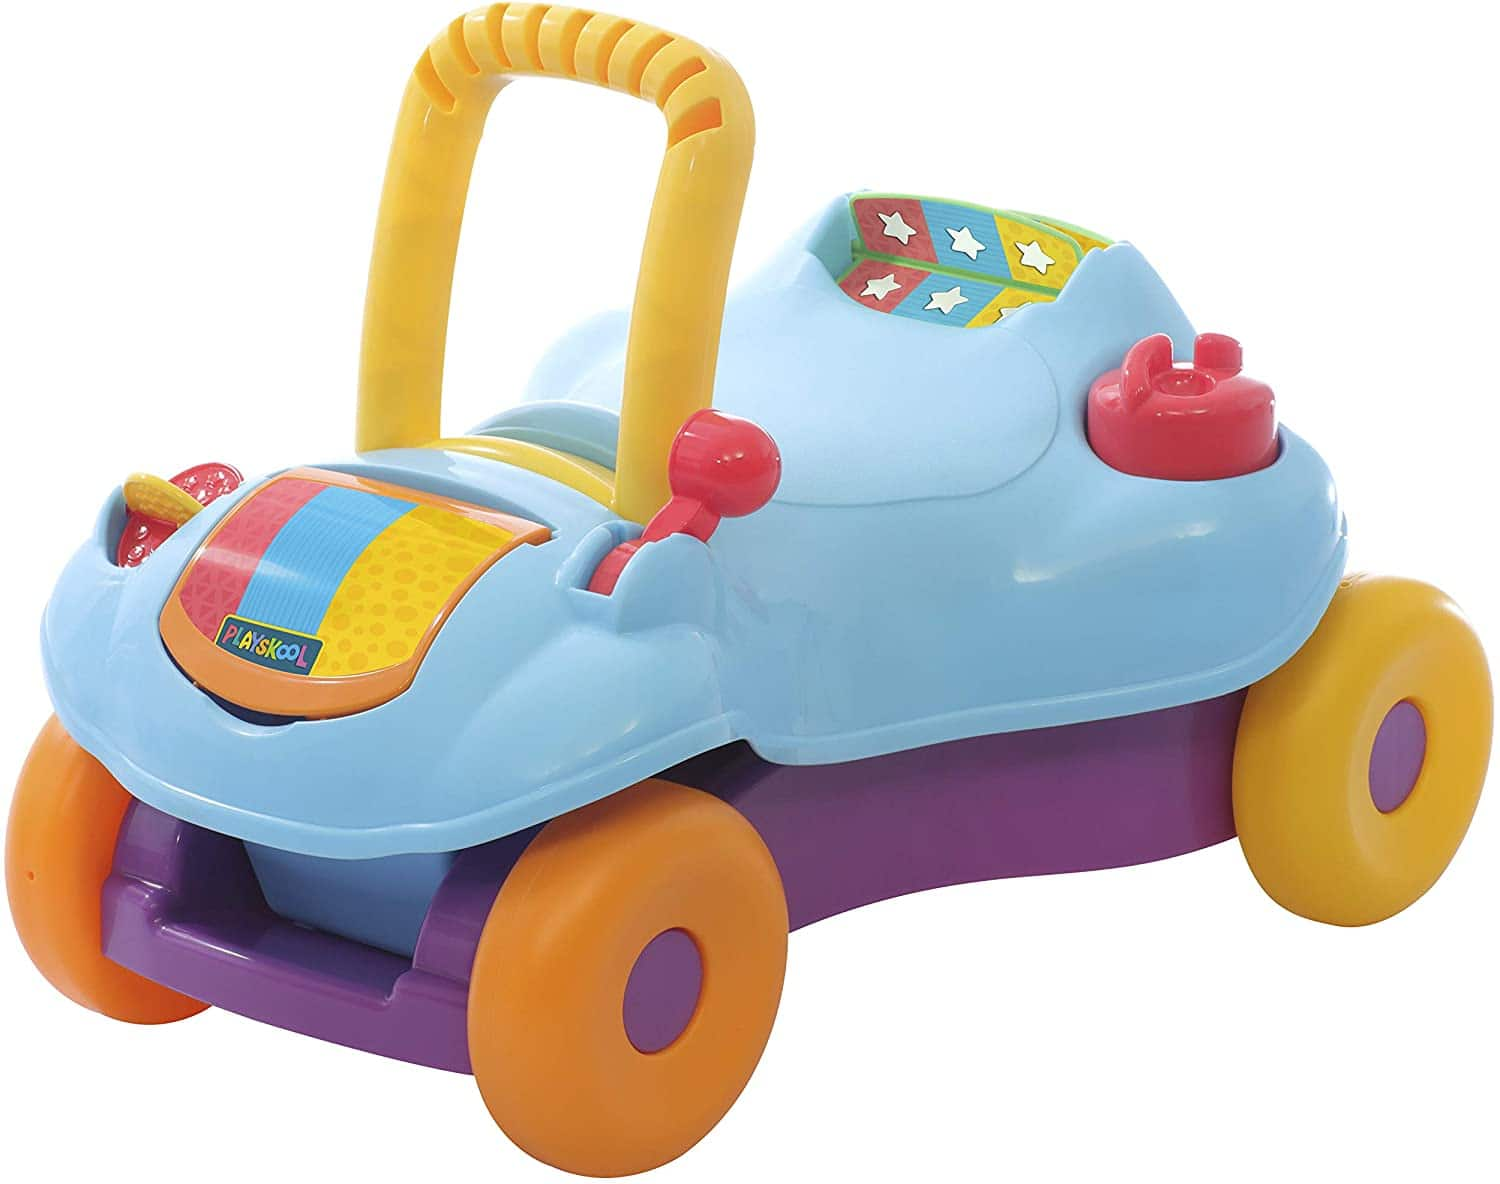 2-in-1 Playskool Step Start Walk 'n Ride Active Ride-On and Walker Toy $22.10 + Free Shipping w/ Prime or on orders $25+